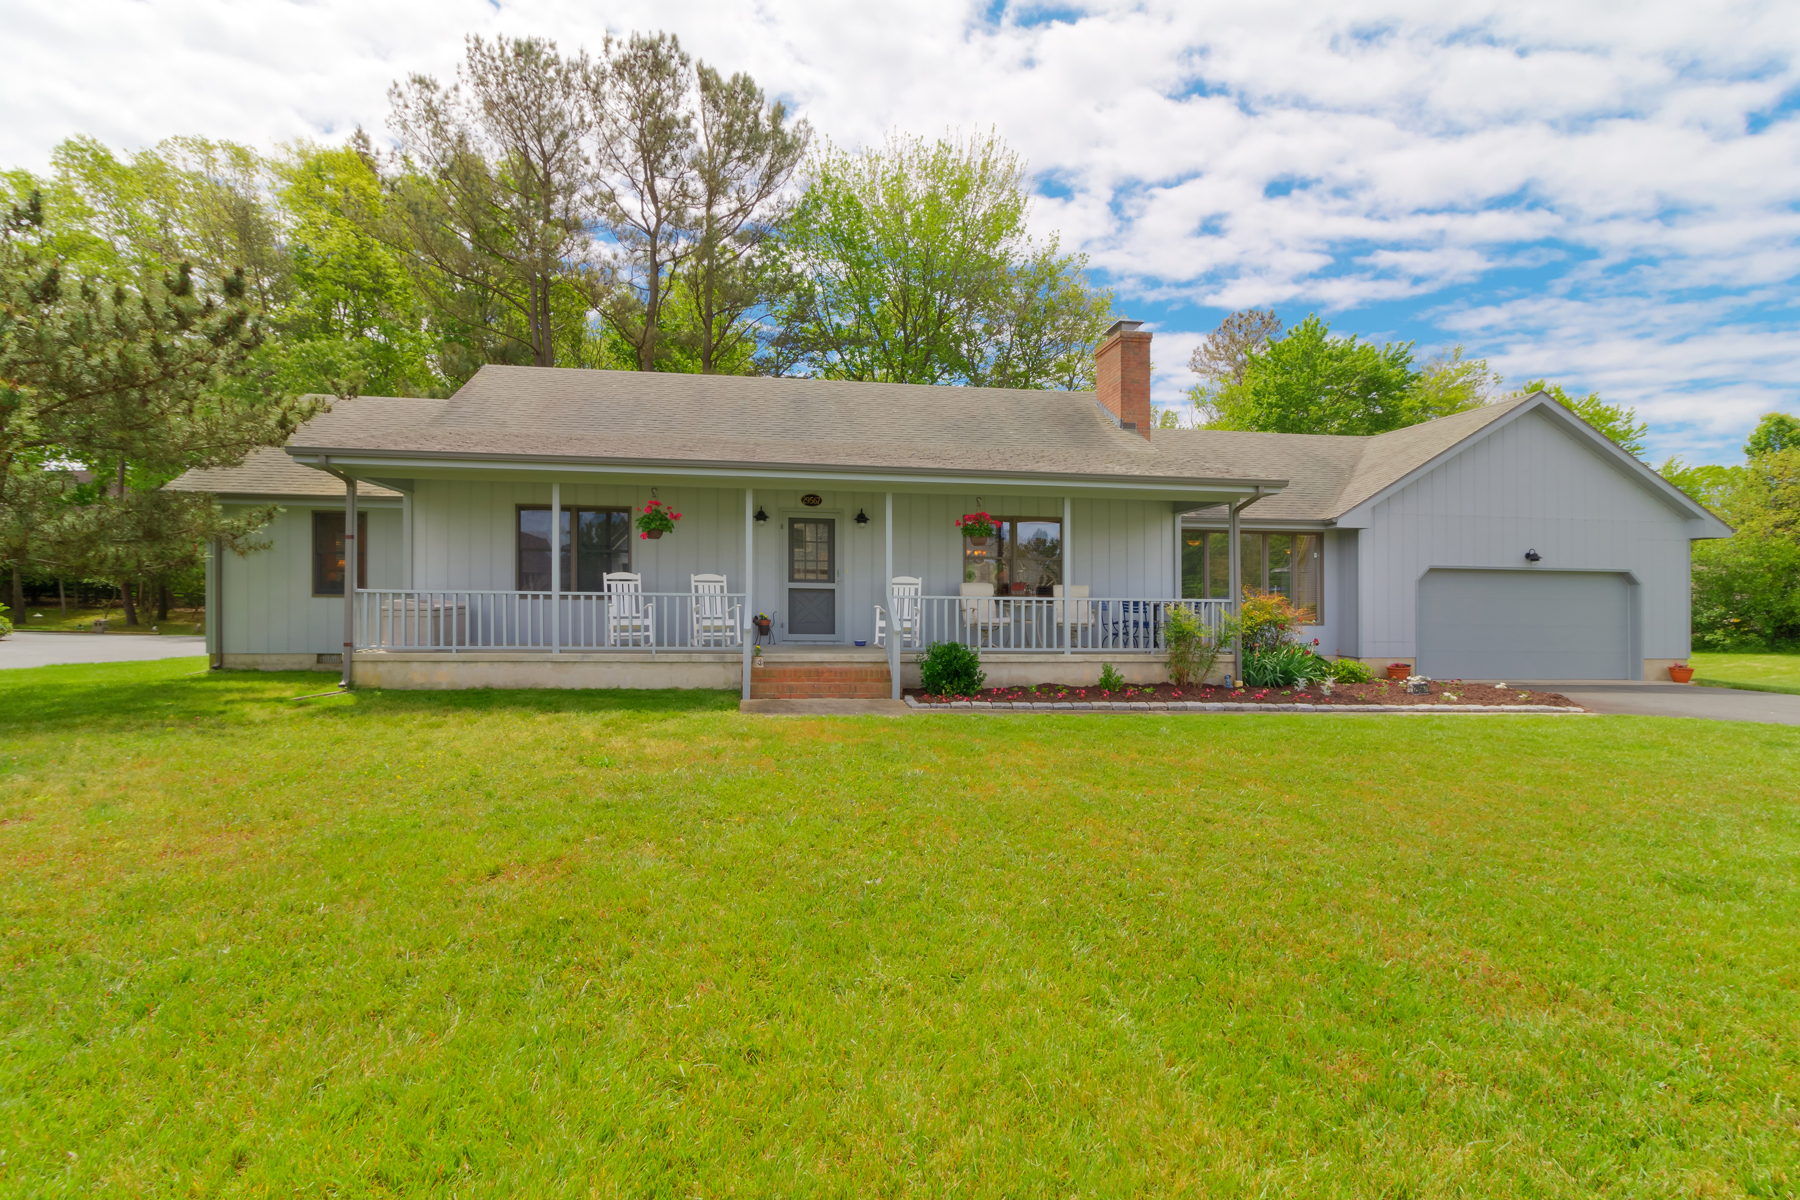 Single Family Home for Sale at 29567 Colony Dr , Dagsboro, DE 19939 29567 Colony Dr Dagsboro, 19939 United States